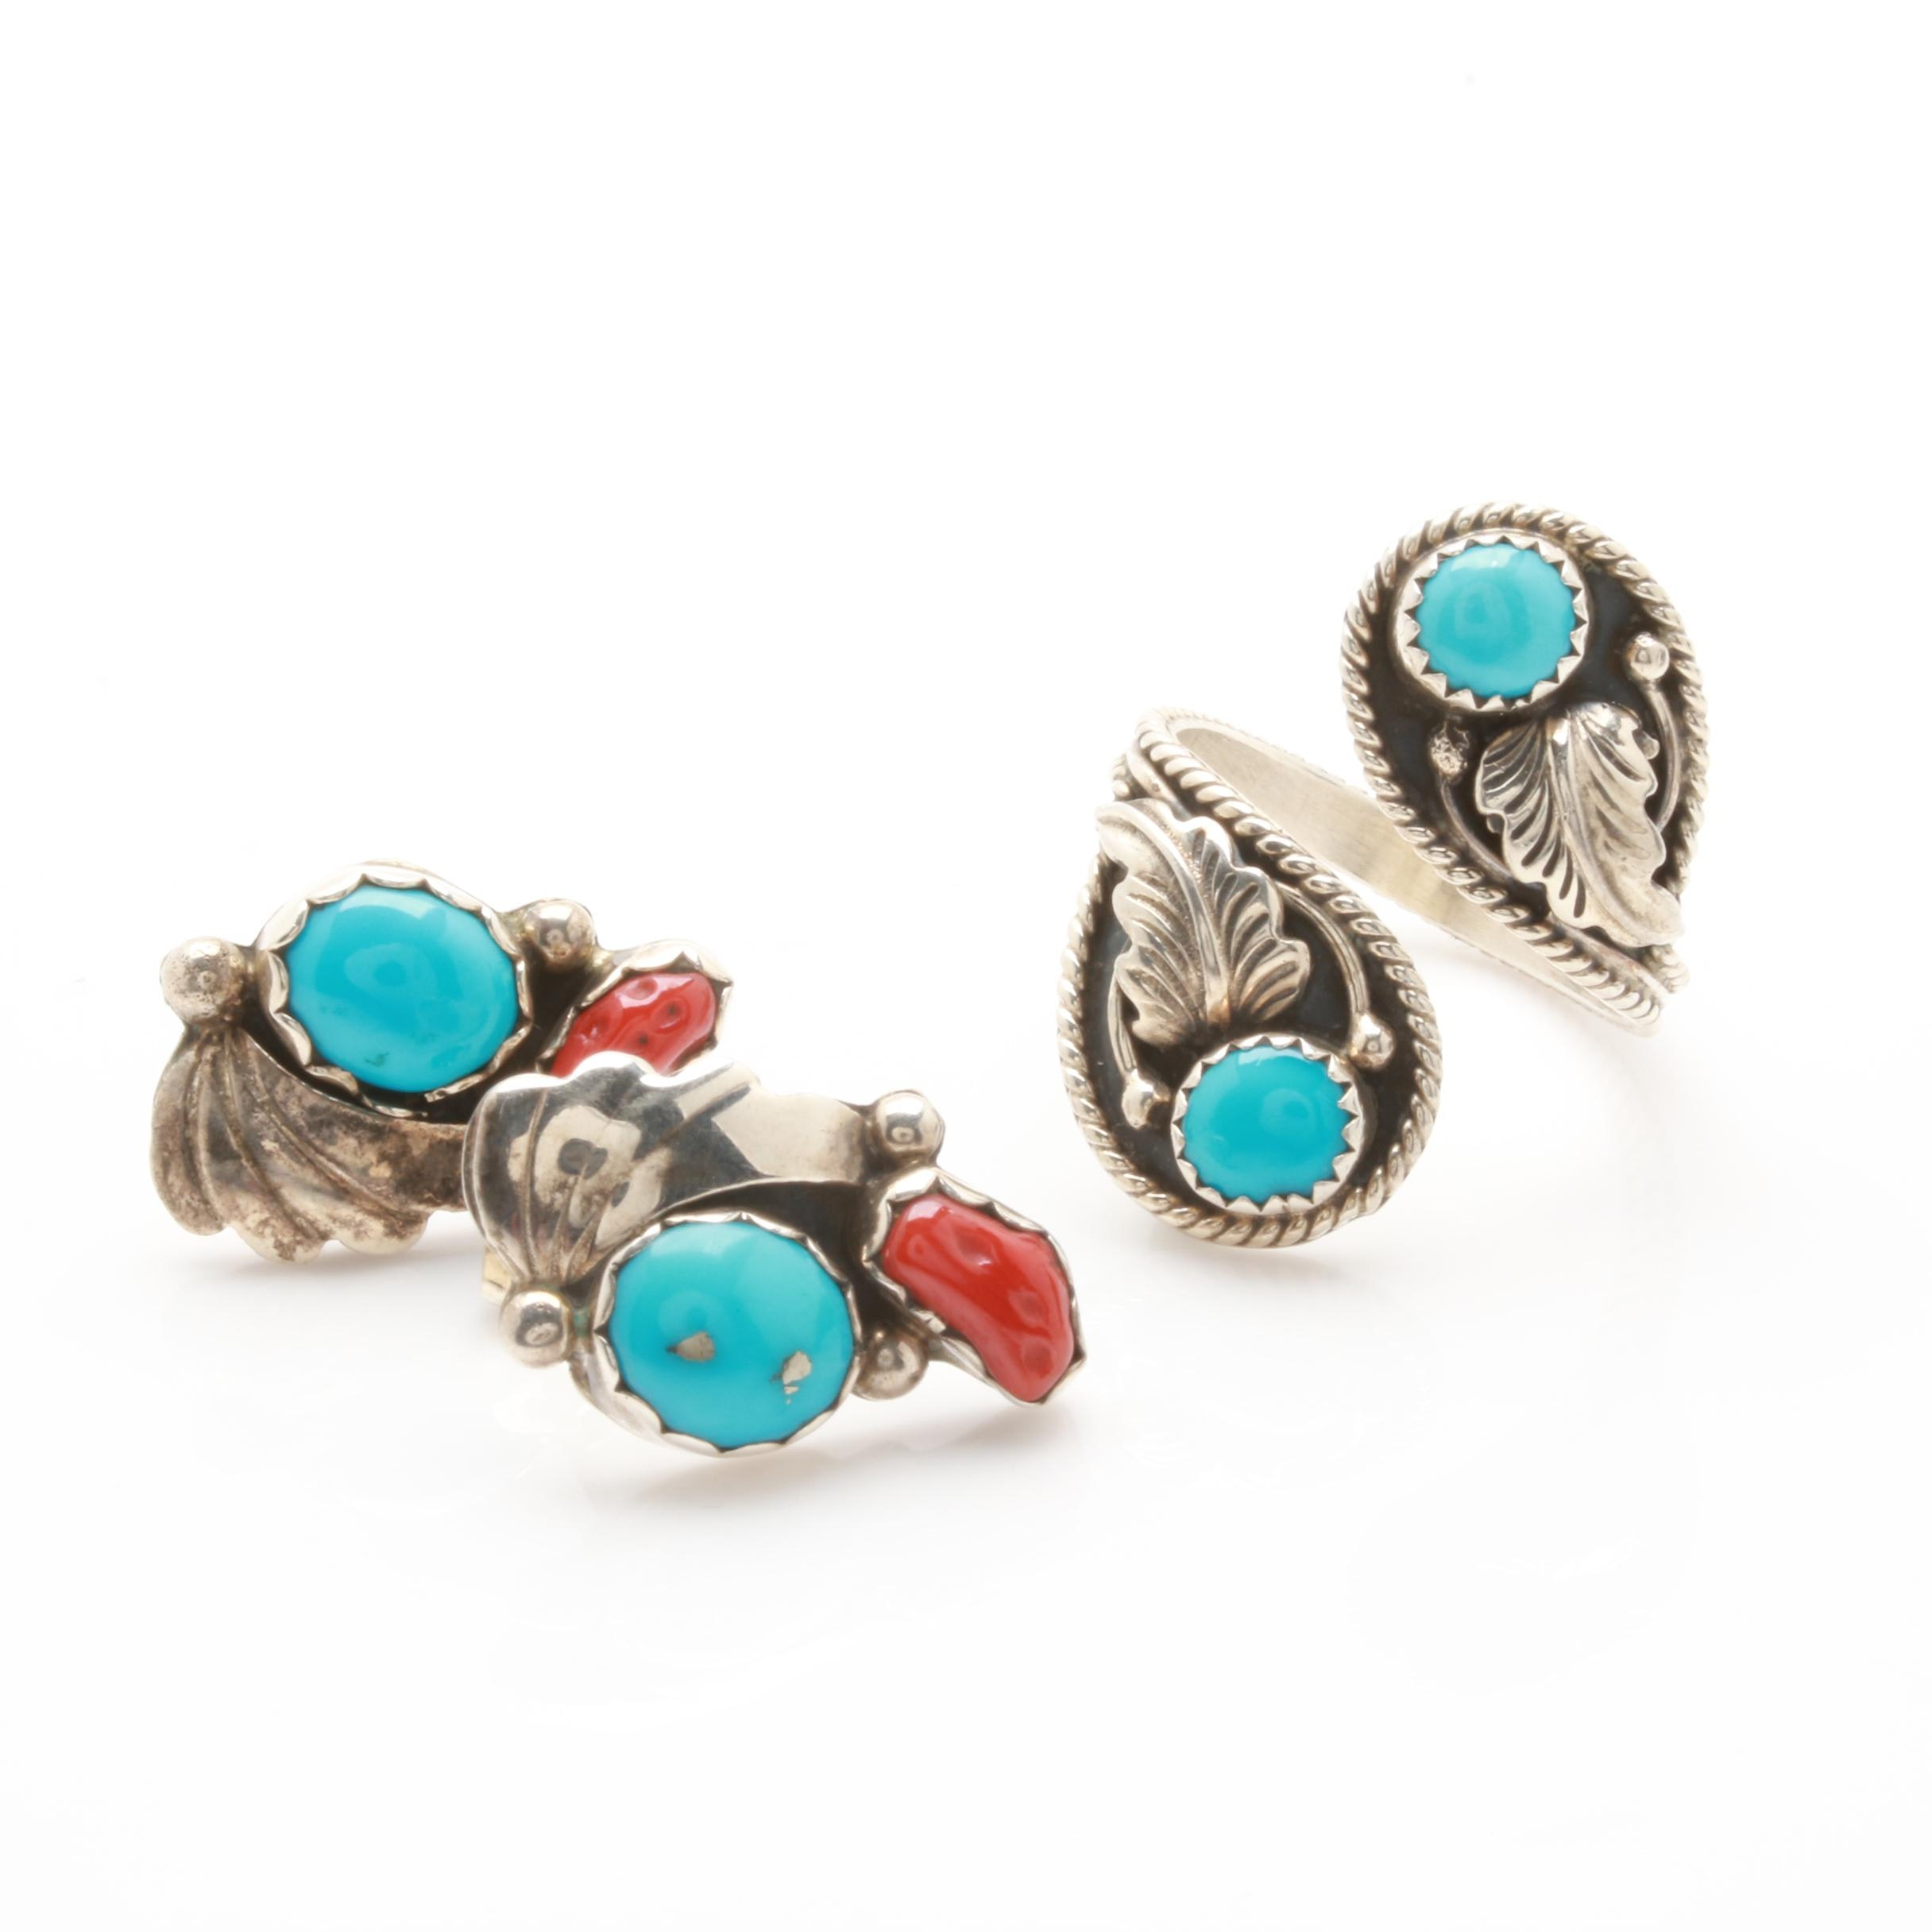 Johnny Johnson Navajo Diné Sterling Silver Ring and Southwestern Earrings